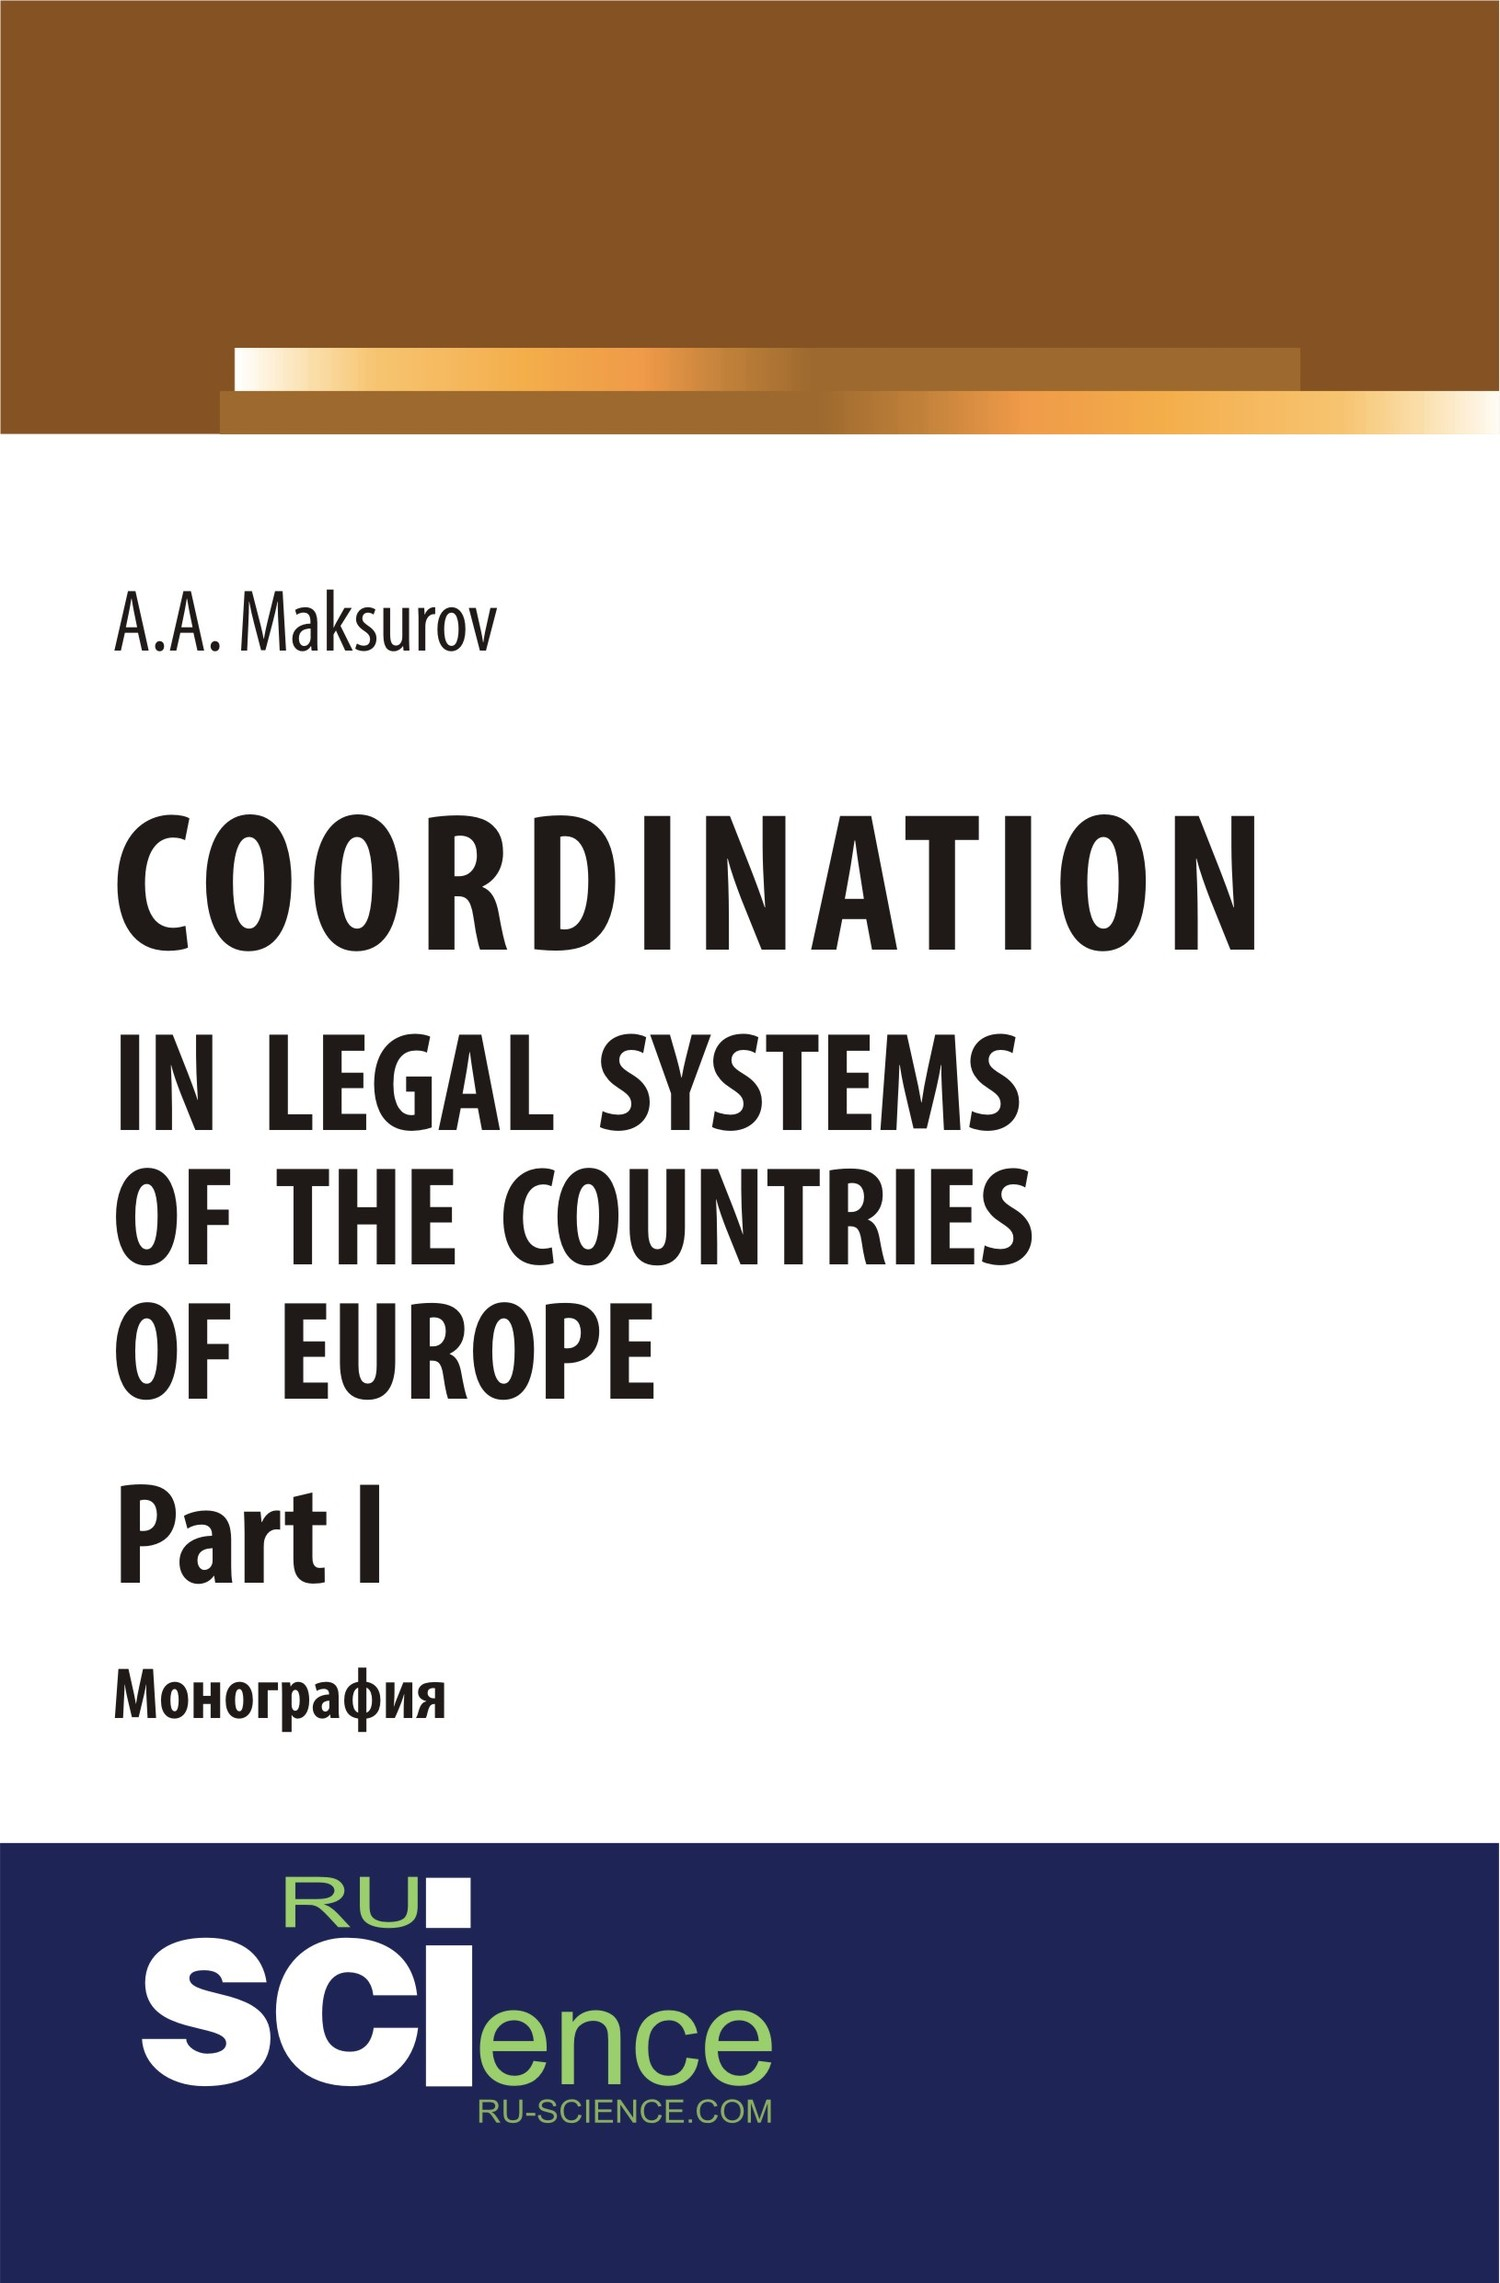 А. А. Максуров Coordination in legal systems of the countries of Europe. Part I noonan morality of abortion legal and historic al perspectives pr only